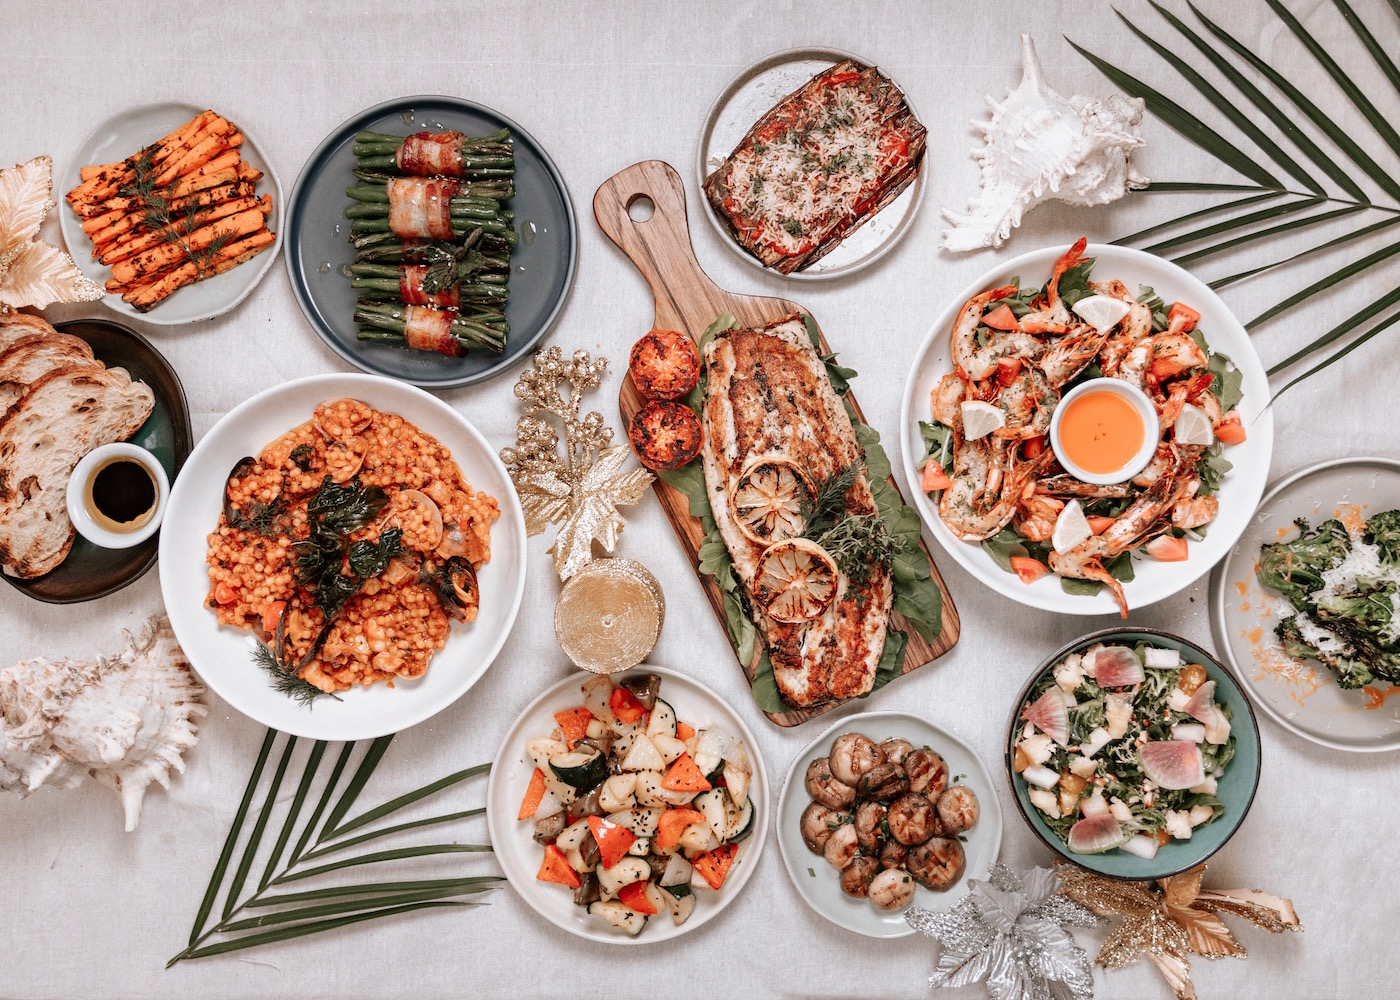 The Feast of the Seven Fishes at Hippie Fish